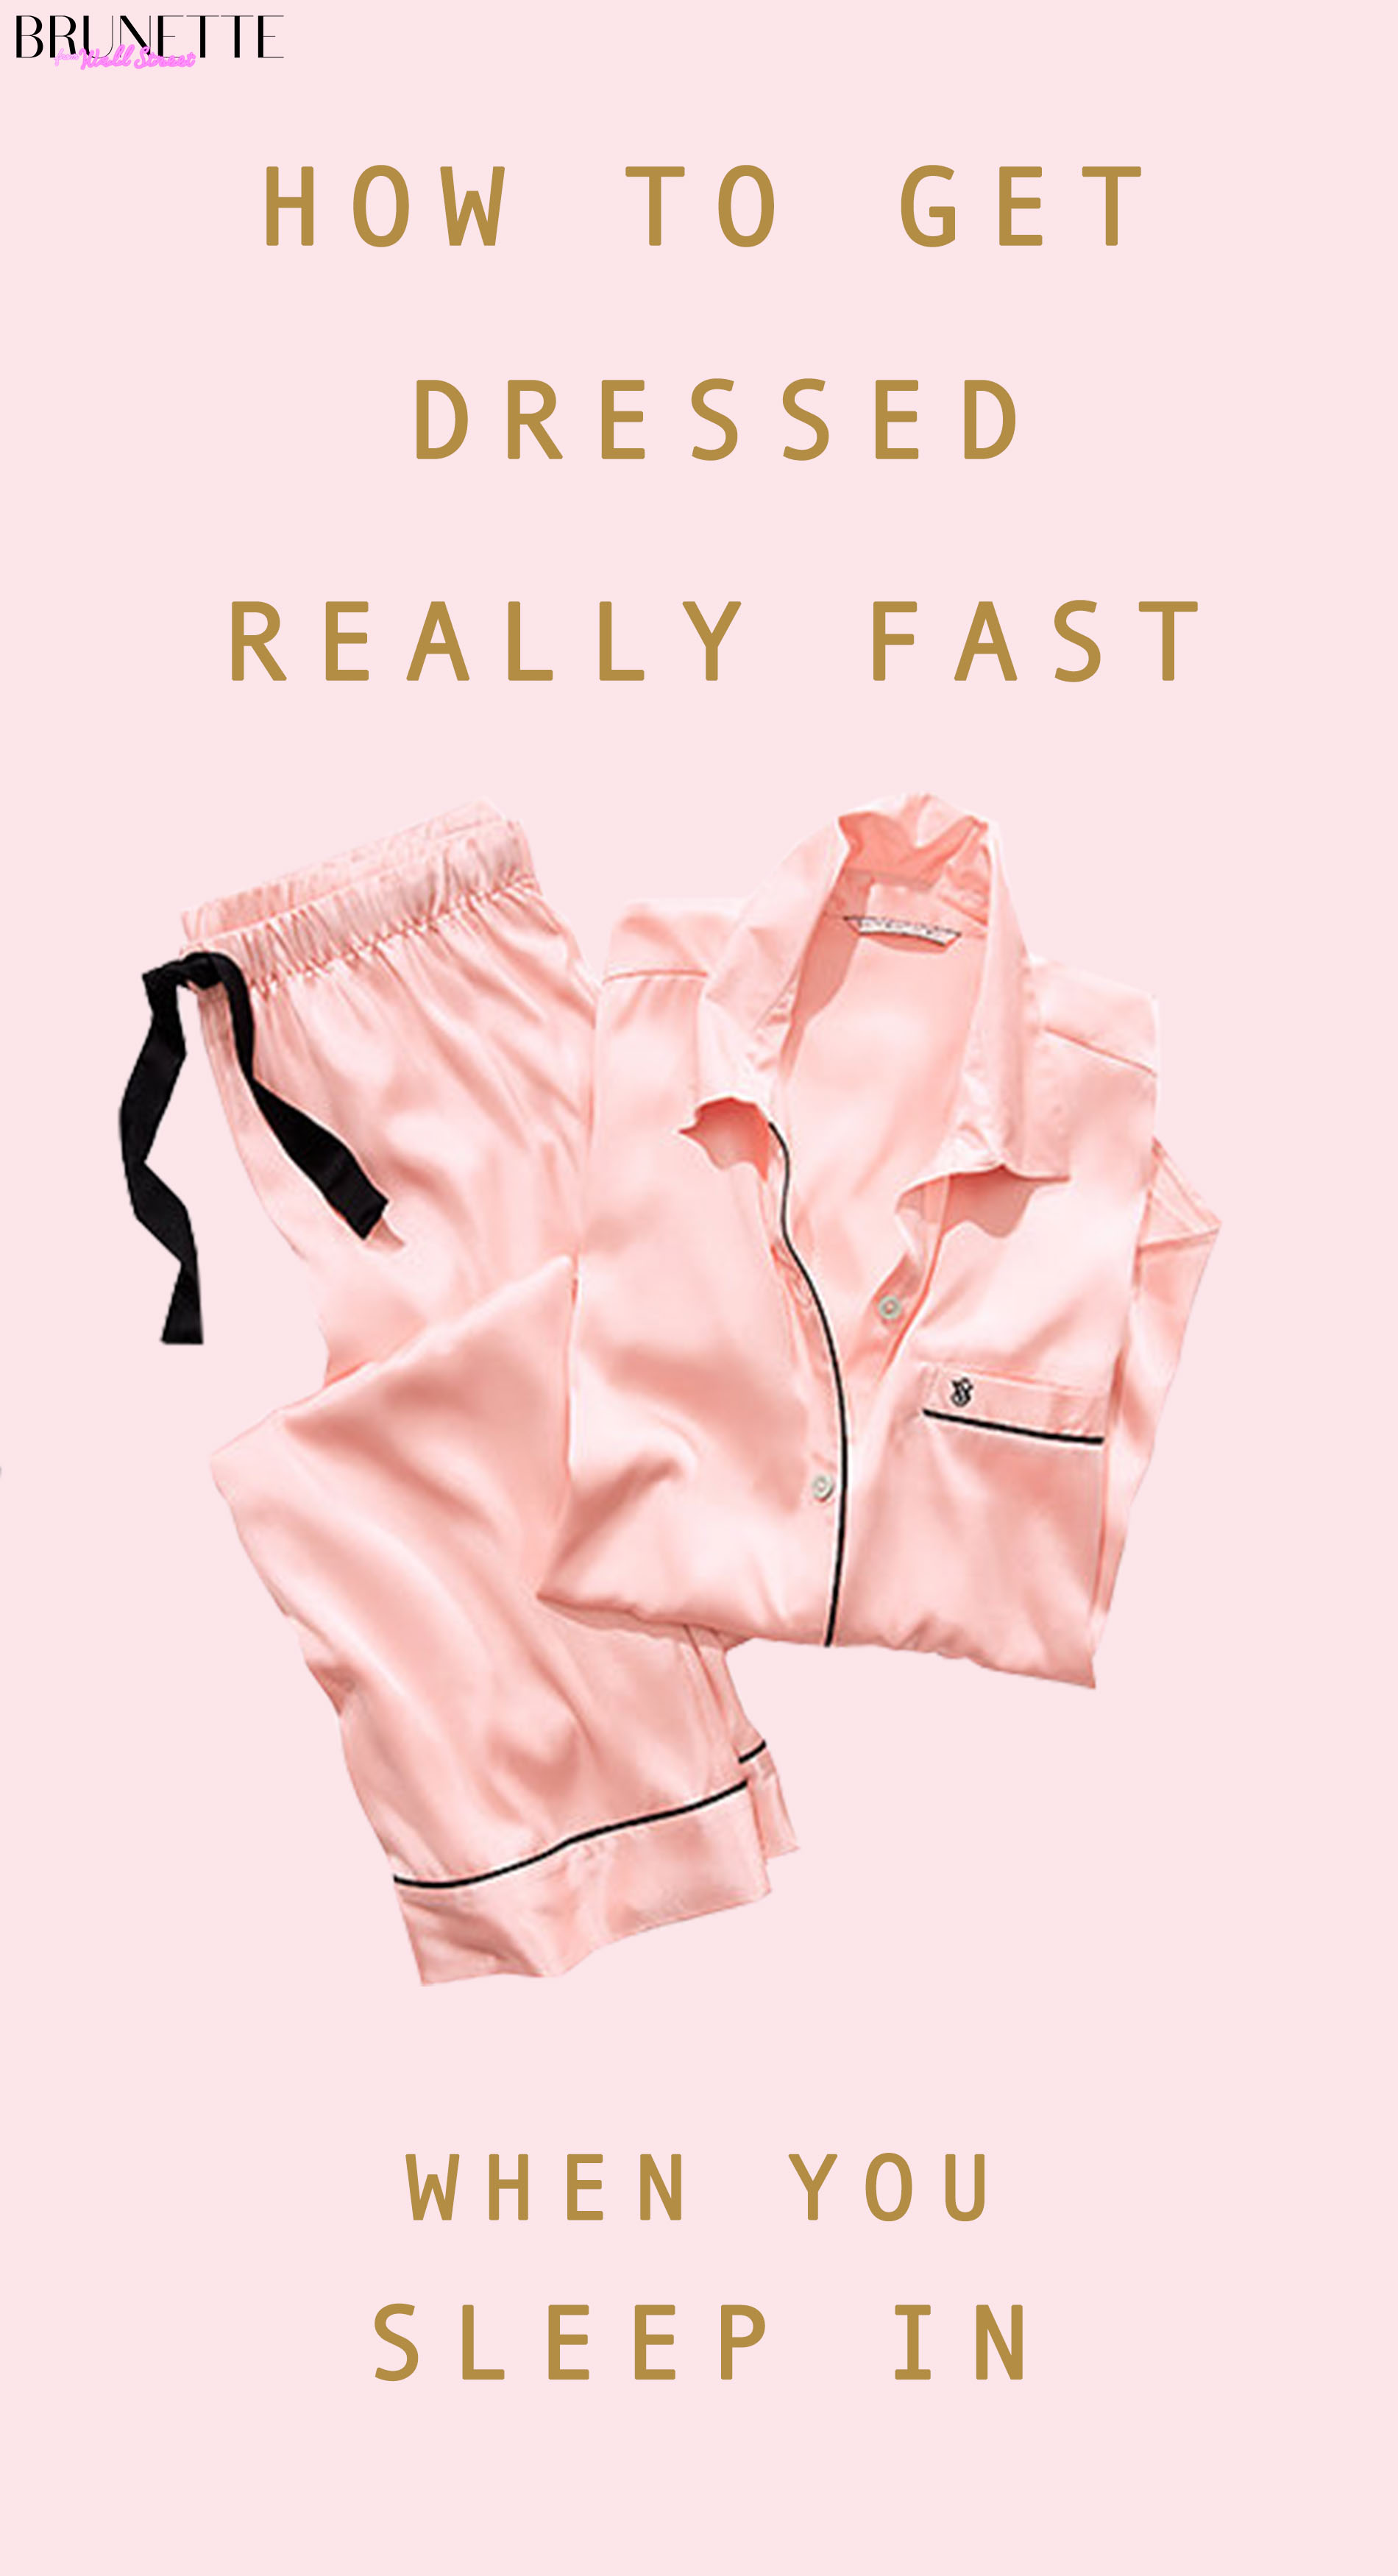 Victoria's Secret pink striped pyjamas with text overlay How to get dressed fast when you sleep in